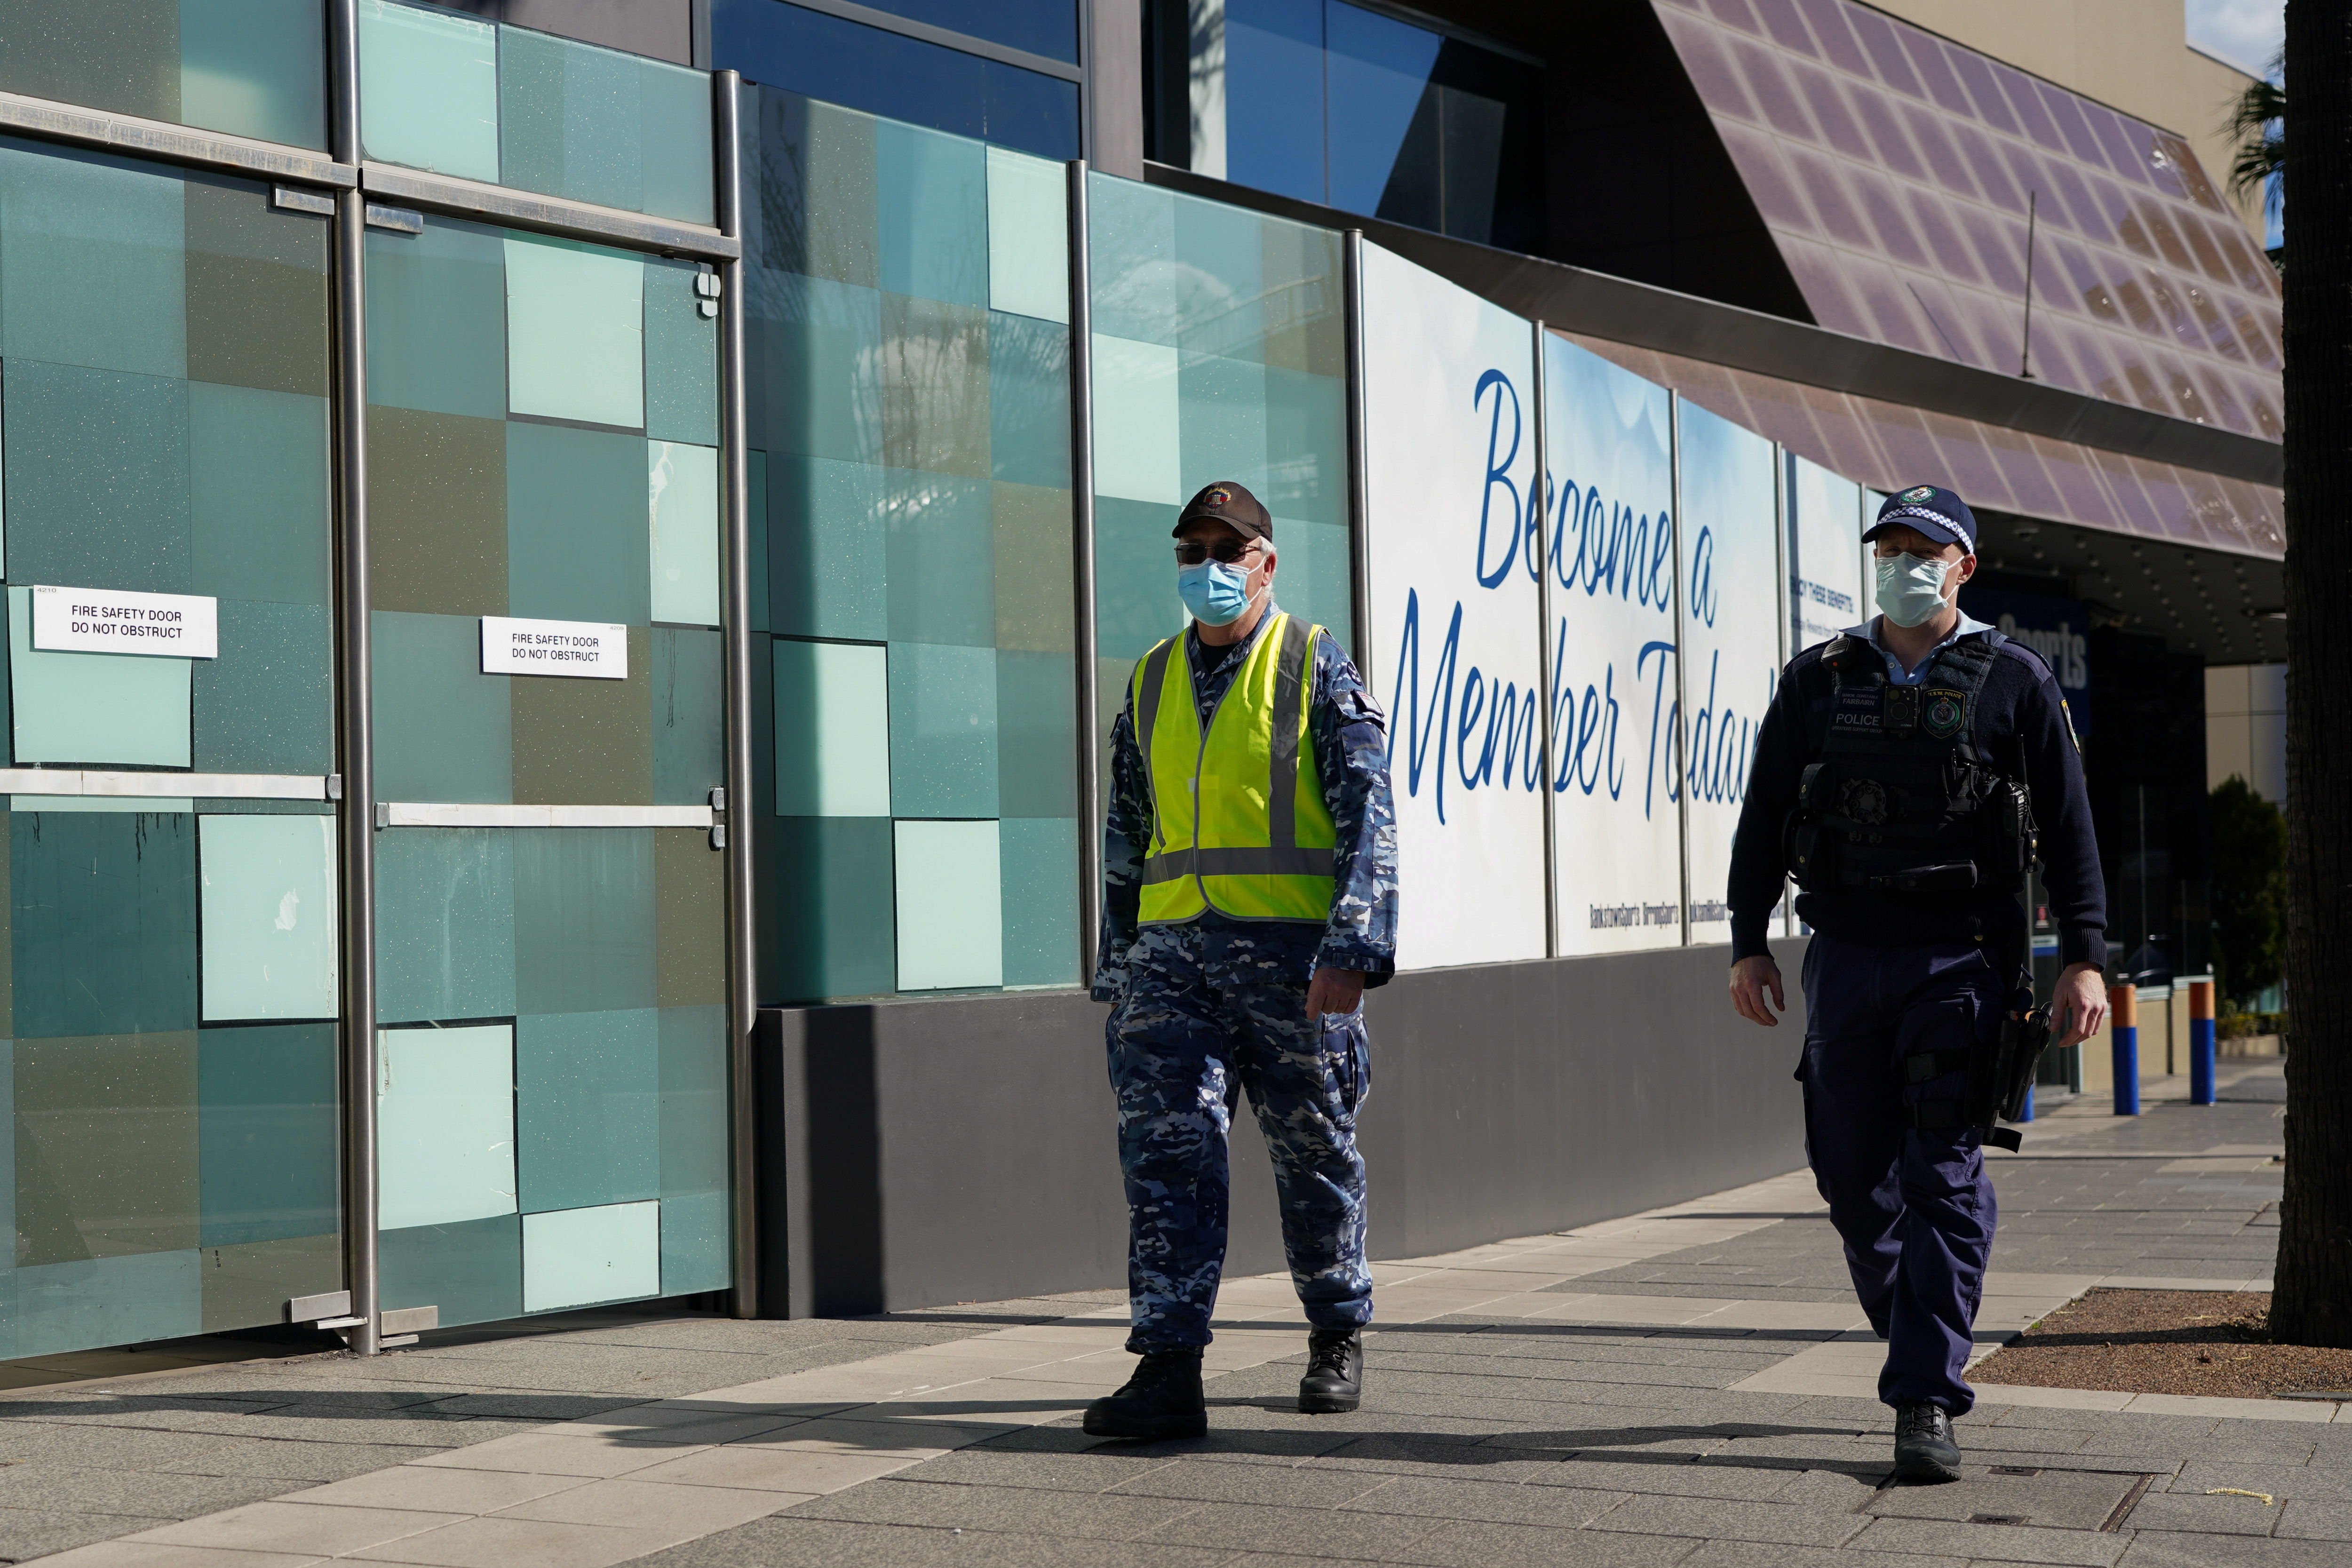 Personnel from the Australian Defence Force and New South Wales Police Force patrol a street in the Bankstown suburb during an extended lockdown to curb the spread of the coronavirus disease (COVID-19) in Sydney, Australia, August 3, 2021.  REUTERS/Loren Elliott